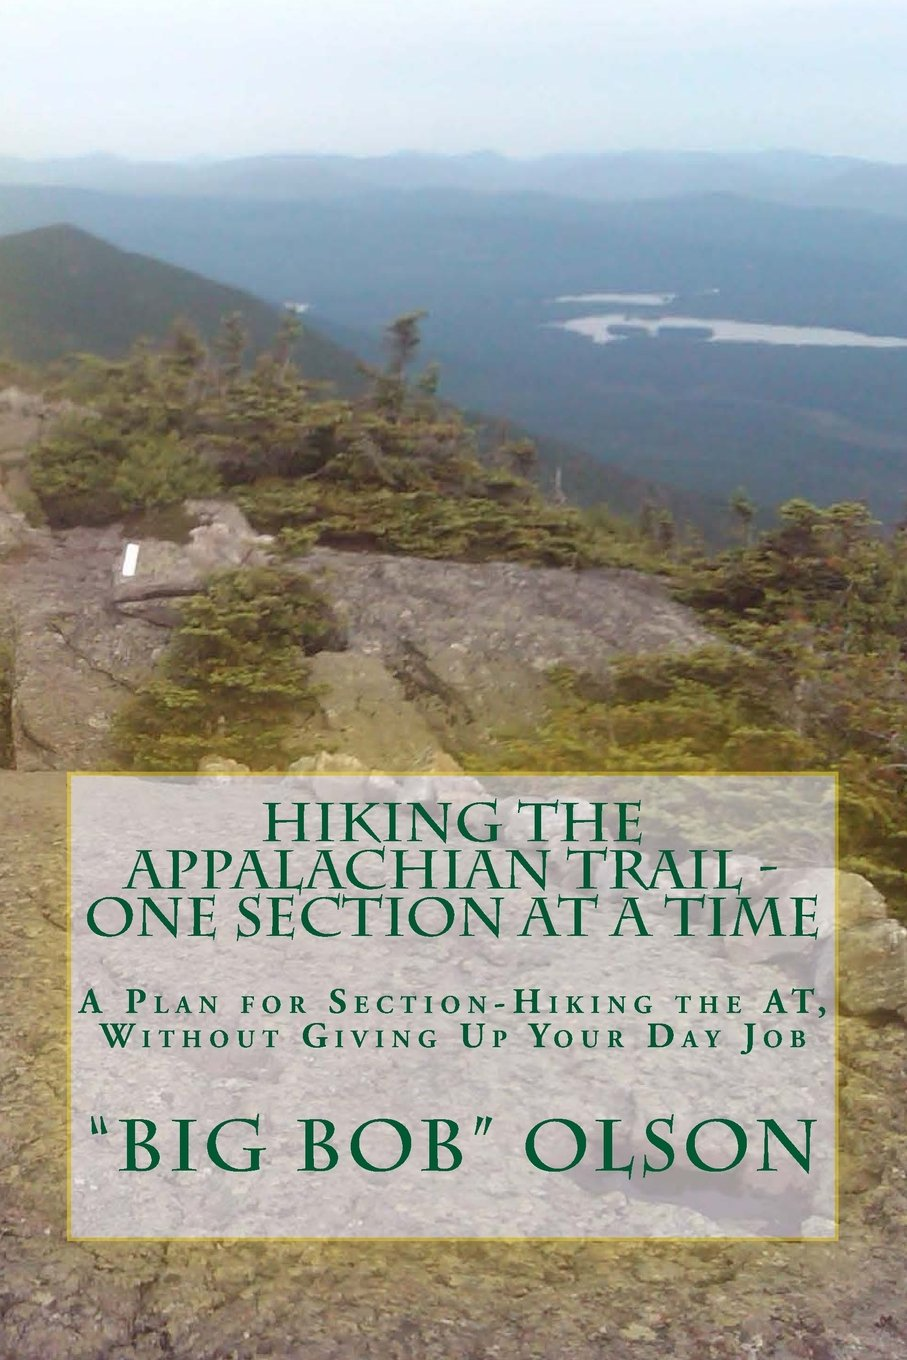 Hiking the Appalachian Trail - One Section at a Time: A Plan for Section-Hiking the AT, Without Giving Up Your Day Job PDF